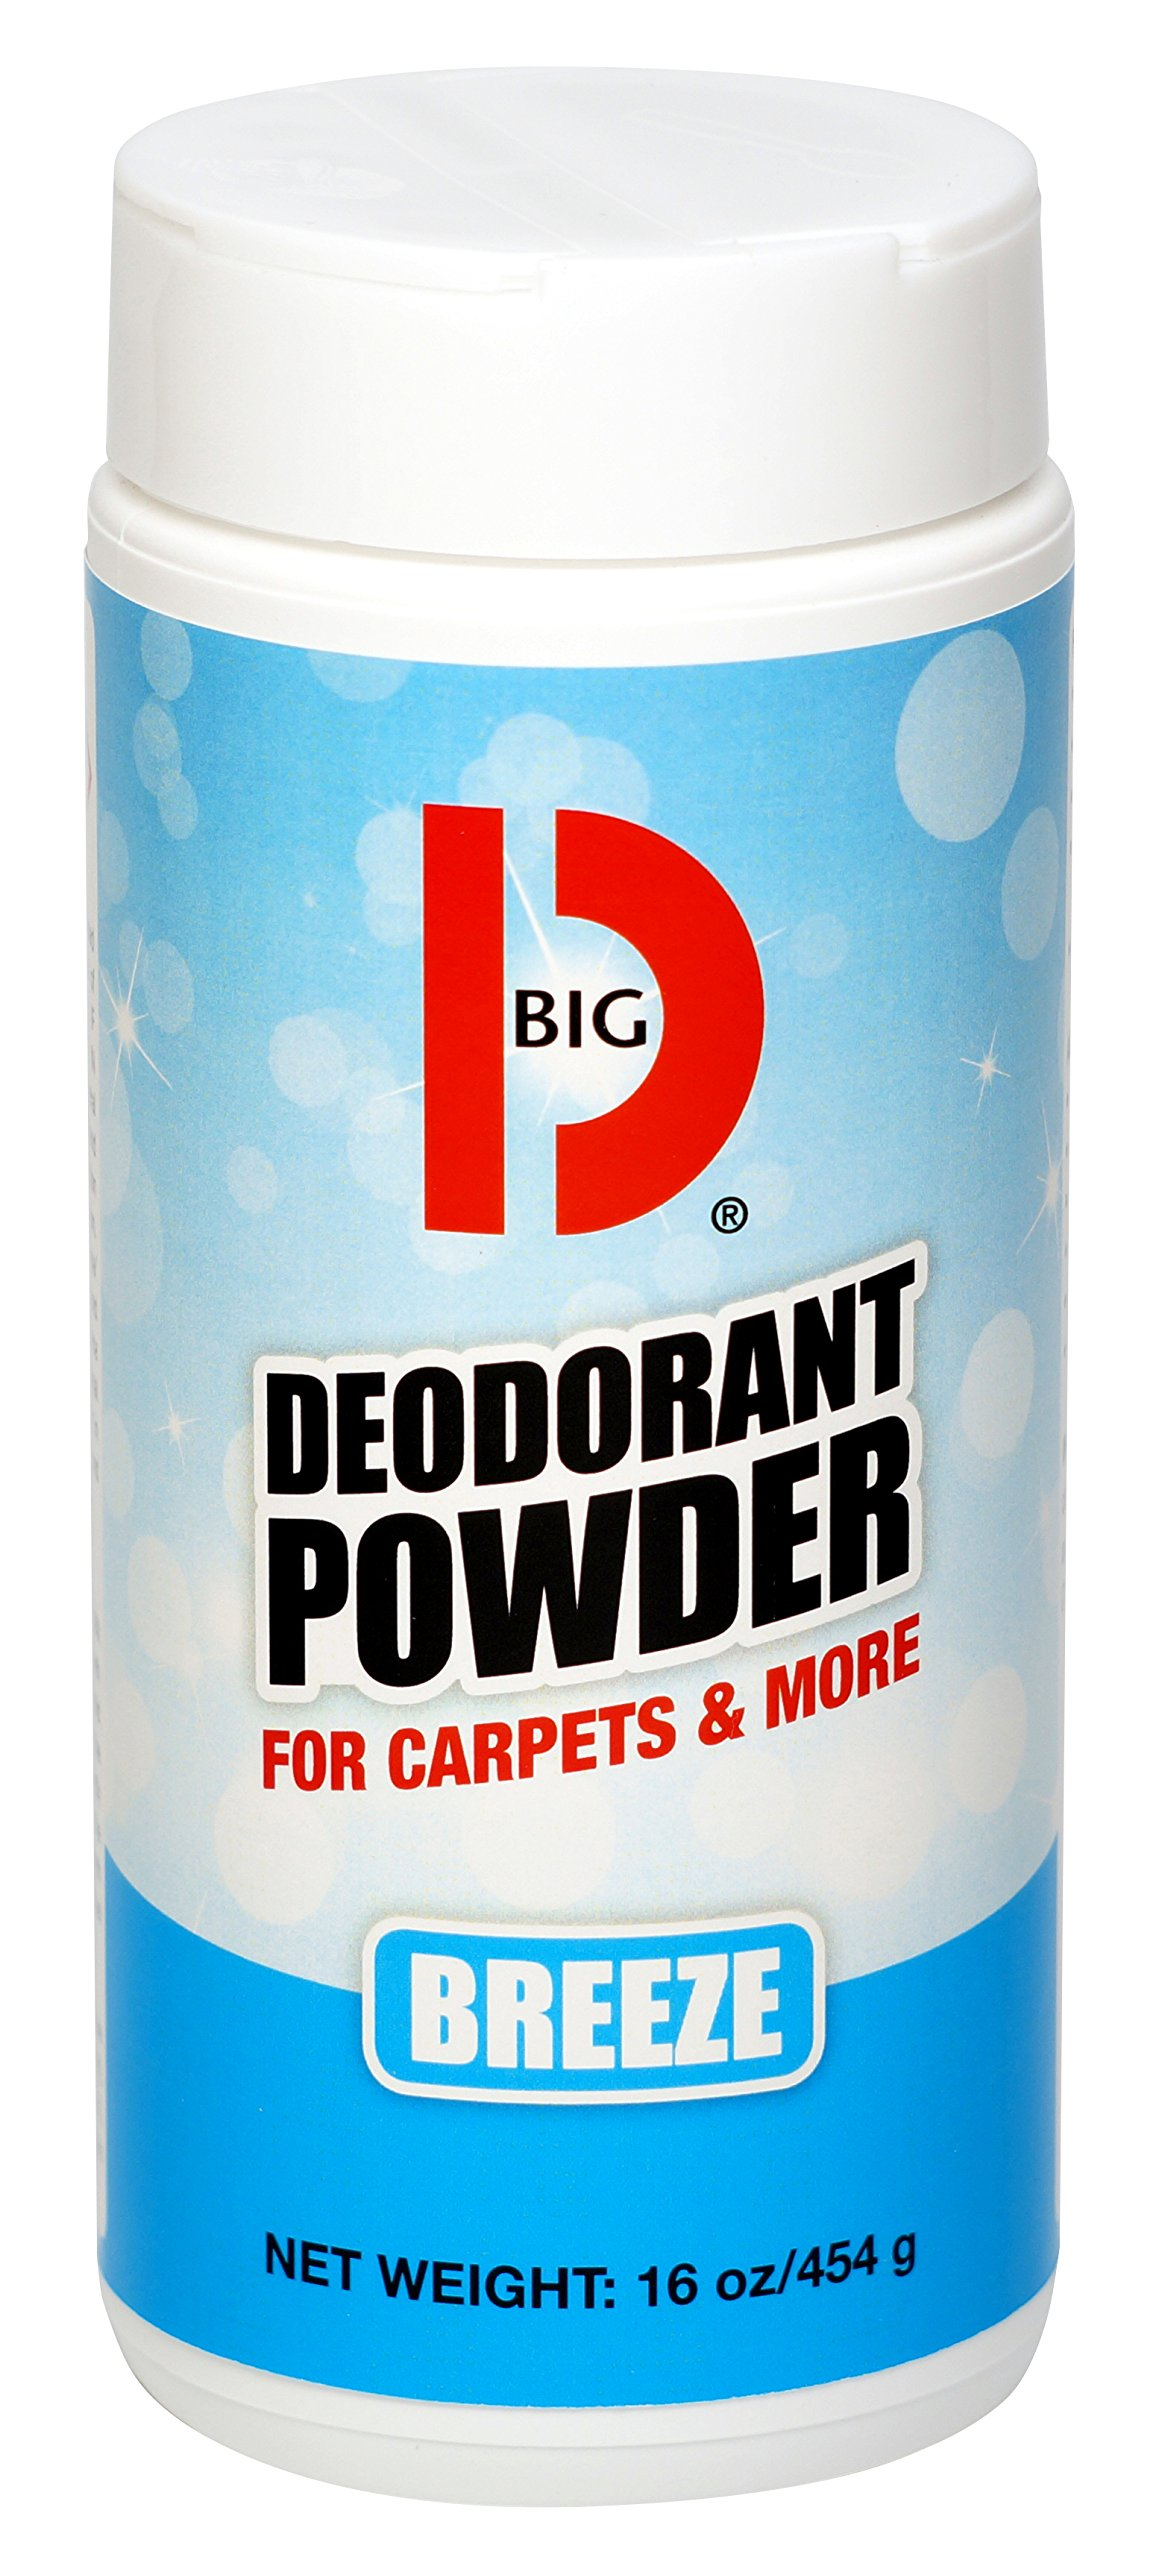 Big D 176 Deodorant Powder for Carpets & More, Breeze Fragrance, 16 oz (Pack of 12) - Ideal for use on carpet, wood, textiles and trash dumpsters